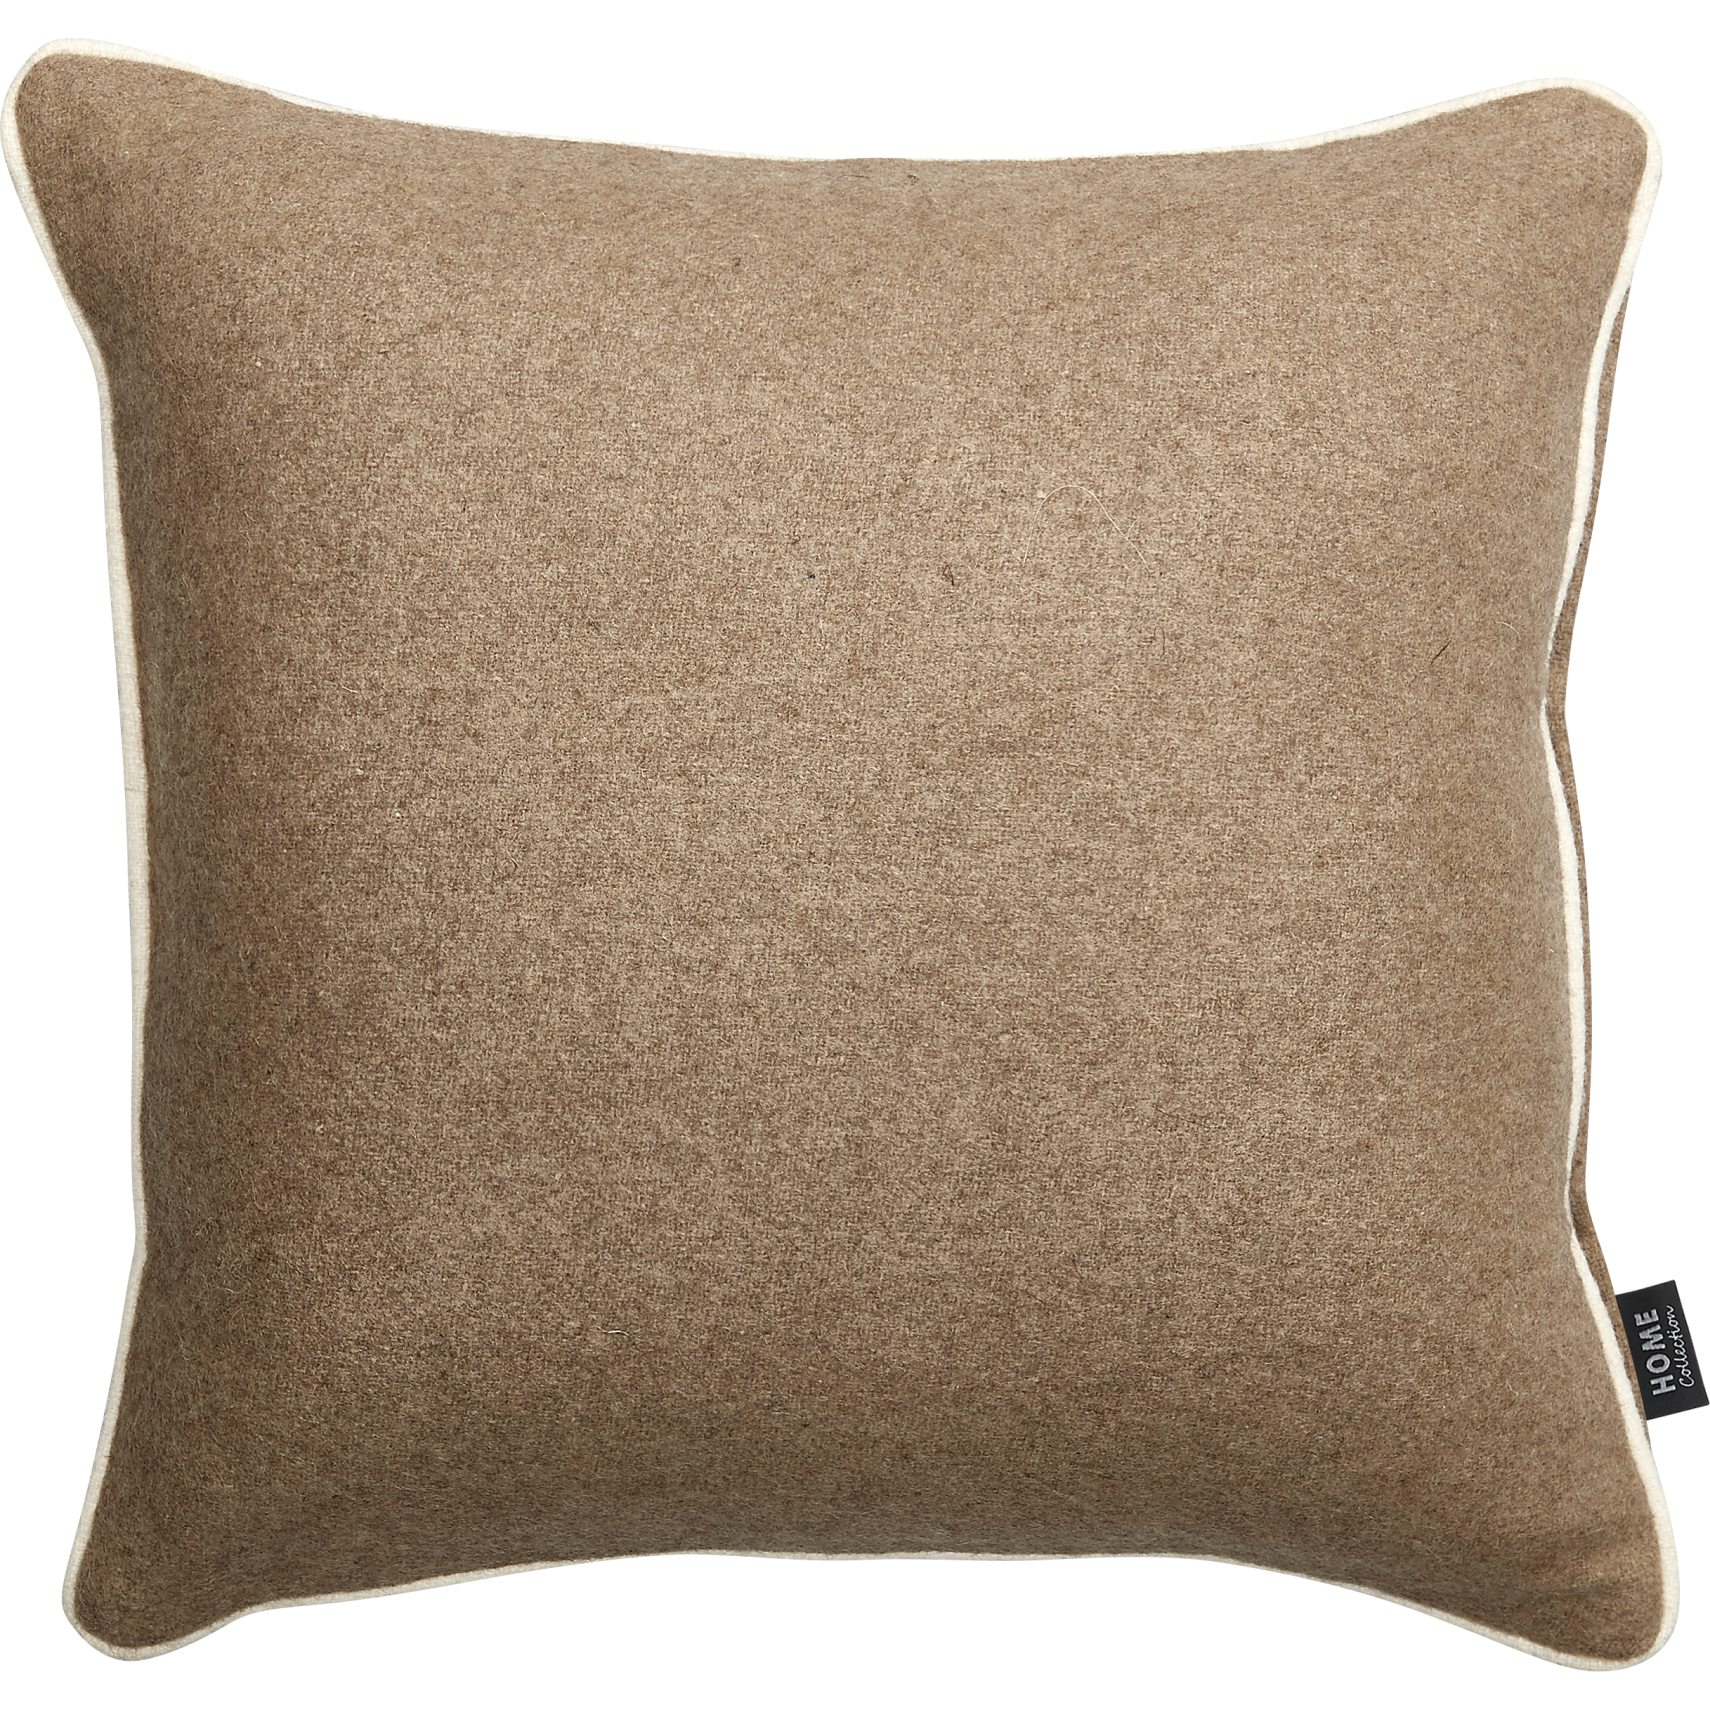 Amadora Pude 40 x 40 x 10 cm - Cinder uld og offwhite piping